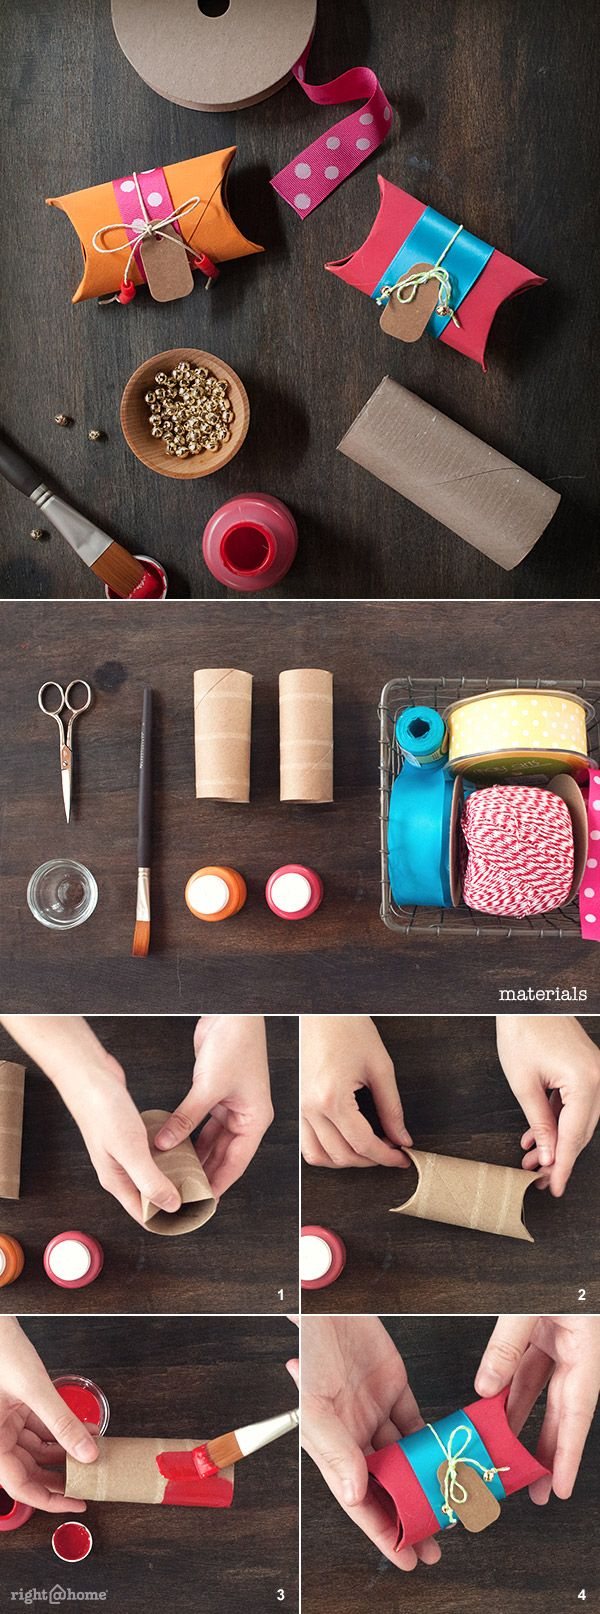 Learn how to make these cuter-than-you-think gift boxes out of toilet paper rolls!